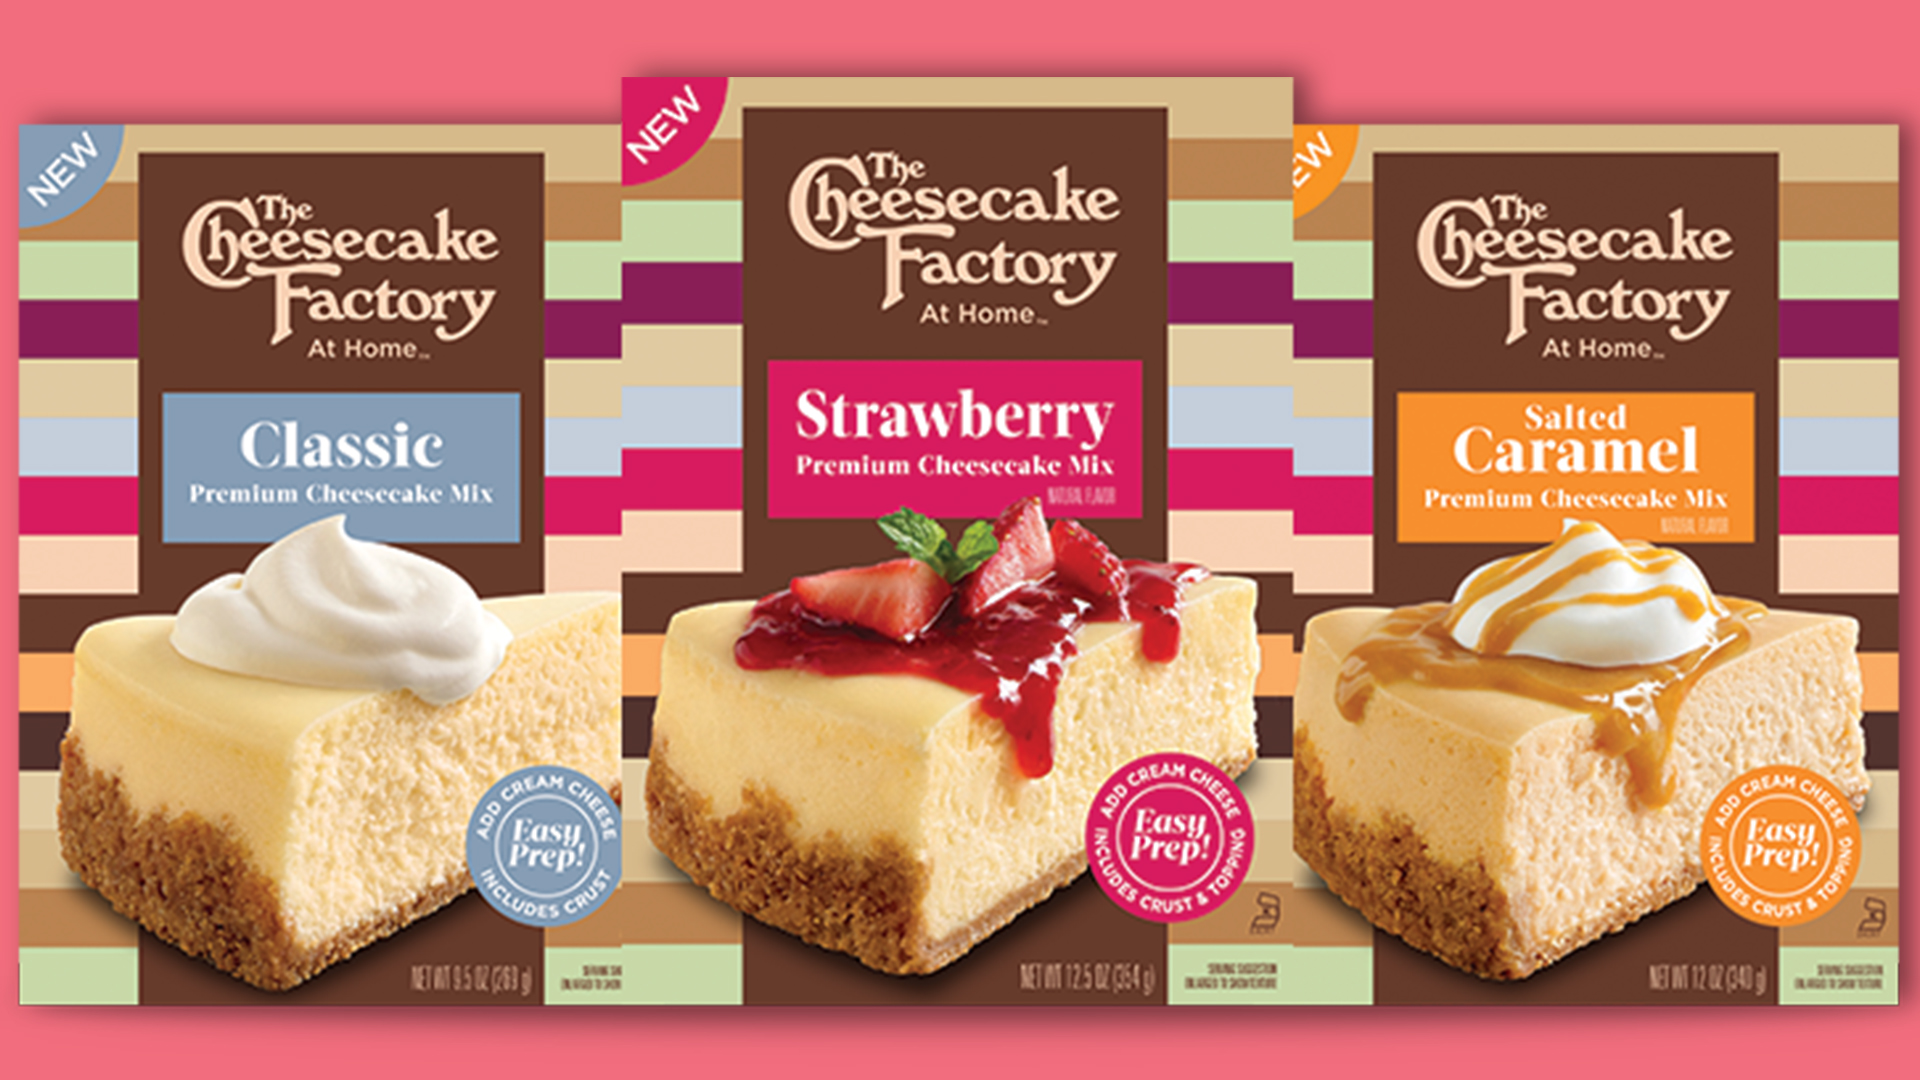 Cheesecake Factory Food Recipes